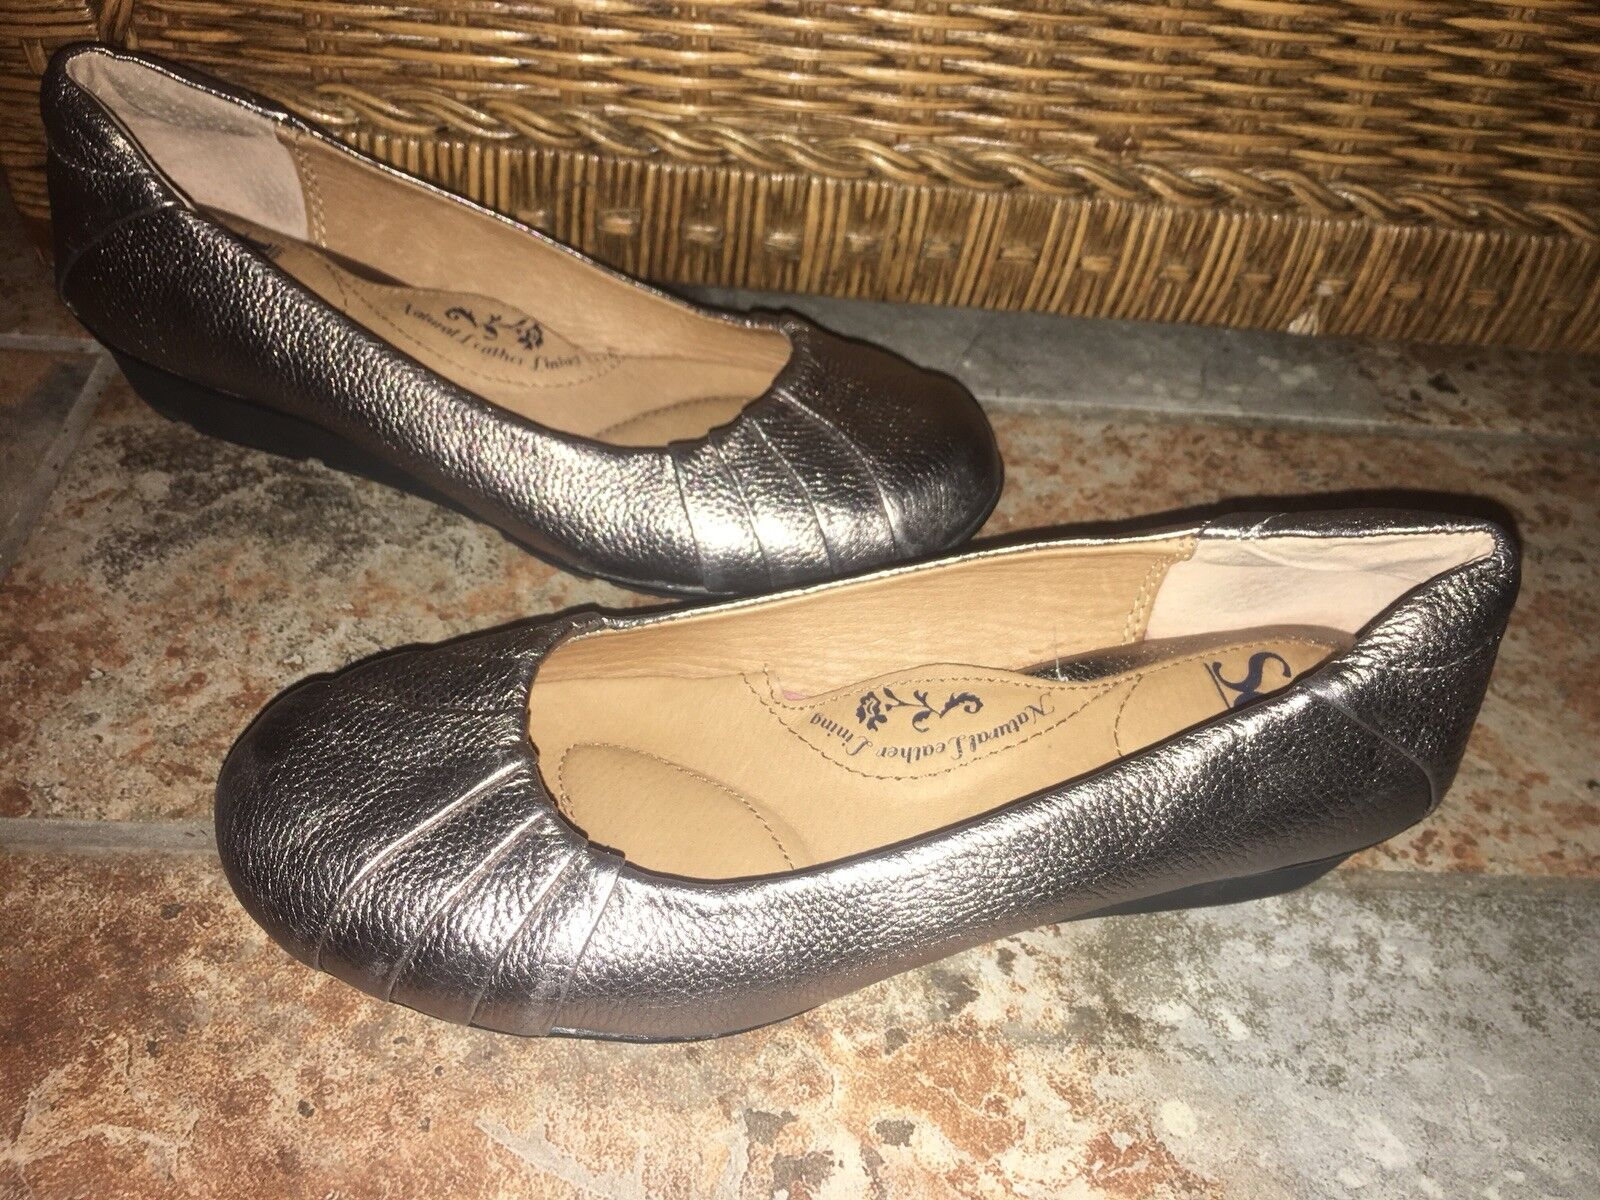 Sofft Pewter Silver Flats Metallic Leather Women's Ballet Flats Silver Shoes - Size 6 M - NEW fffe64